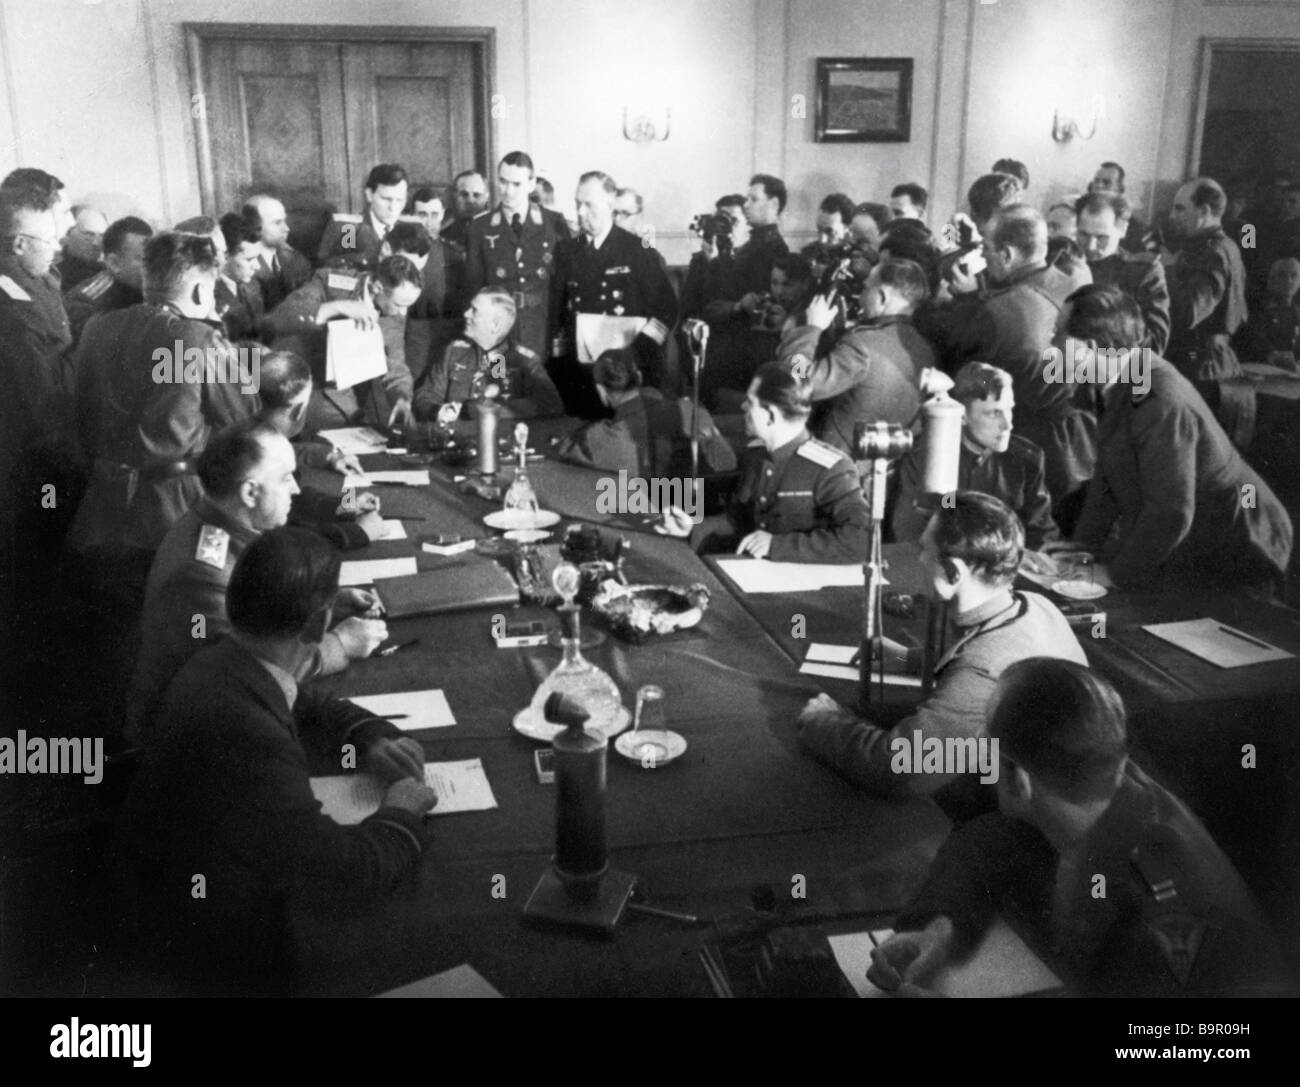 The act on Germany s surrender was signed in the two storied building of the former canteen of the German military - Stock Image